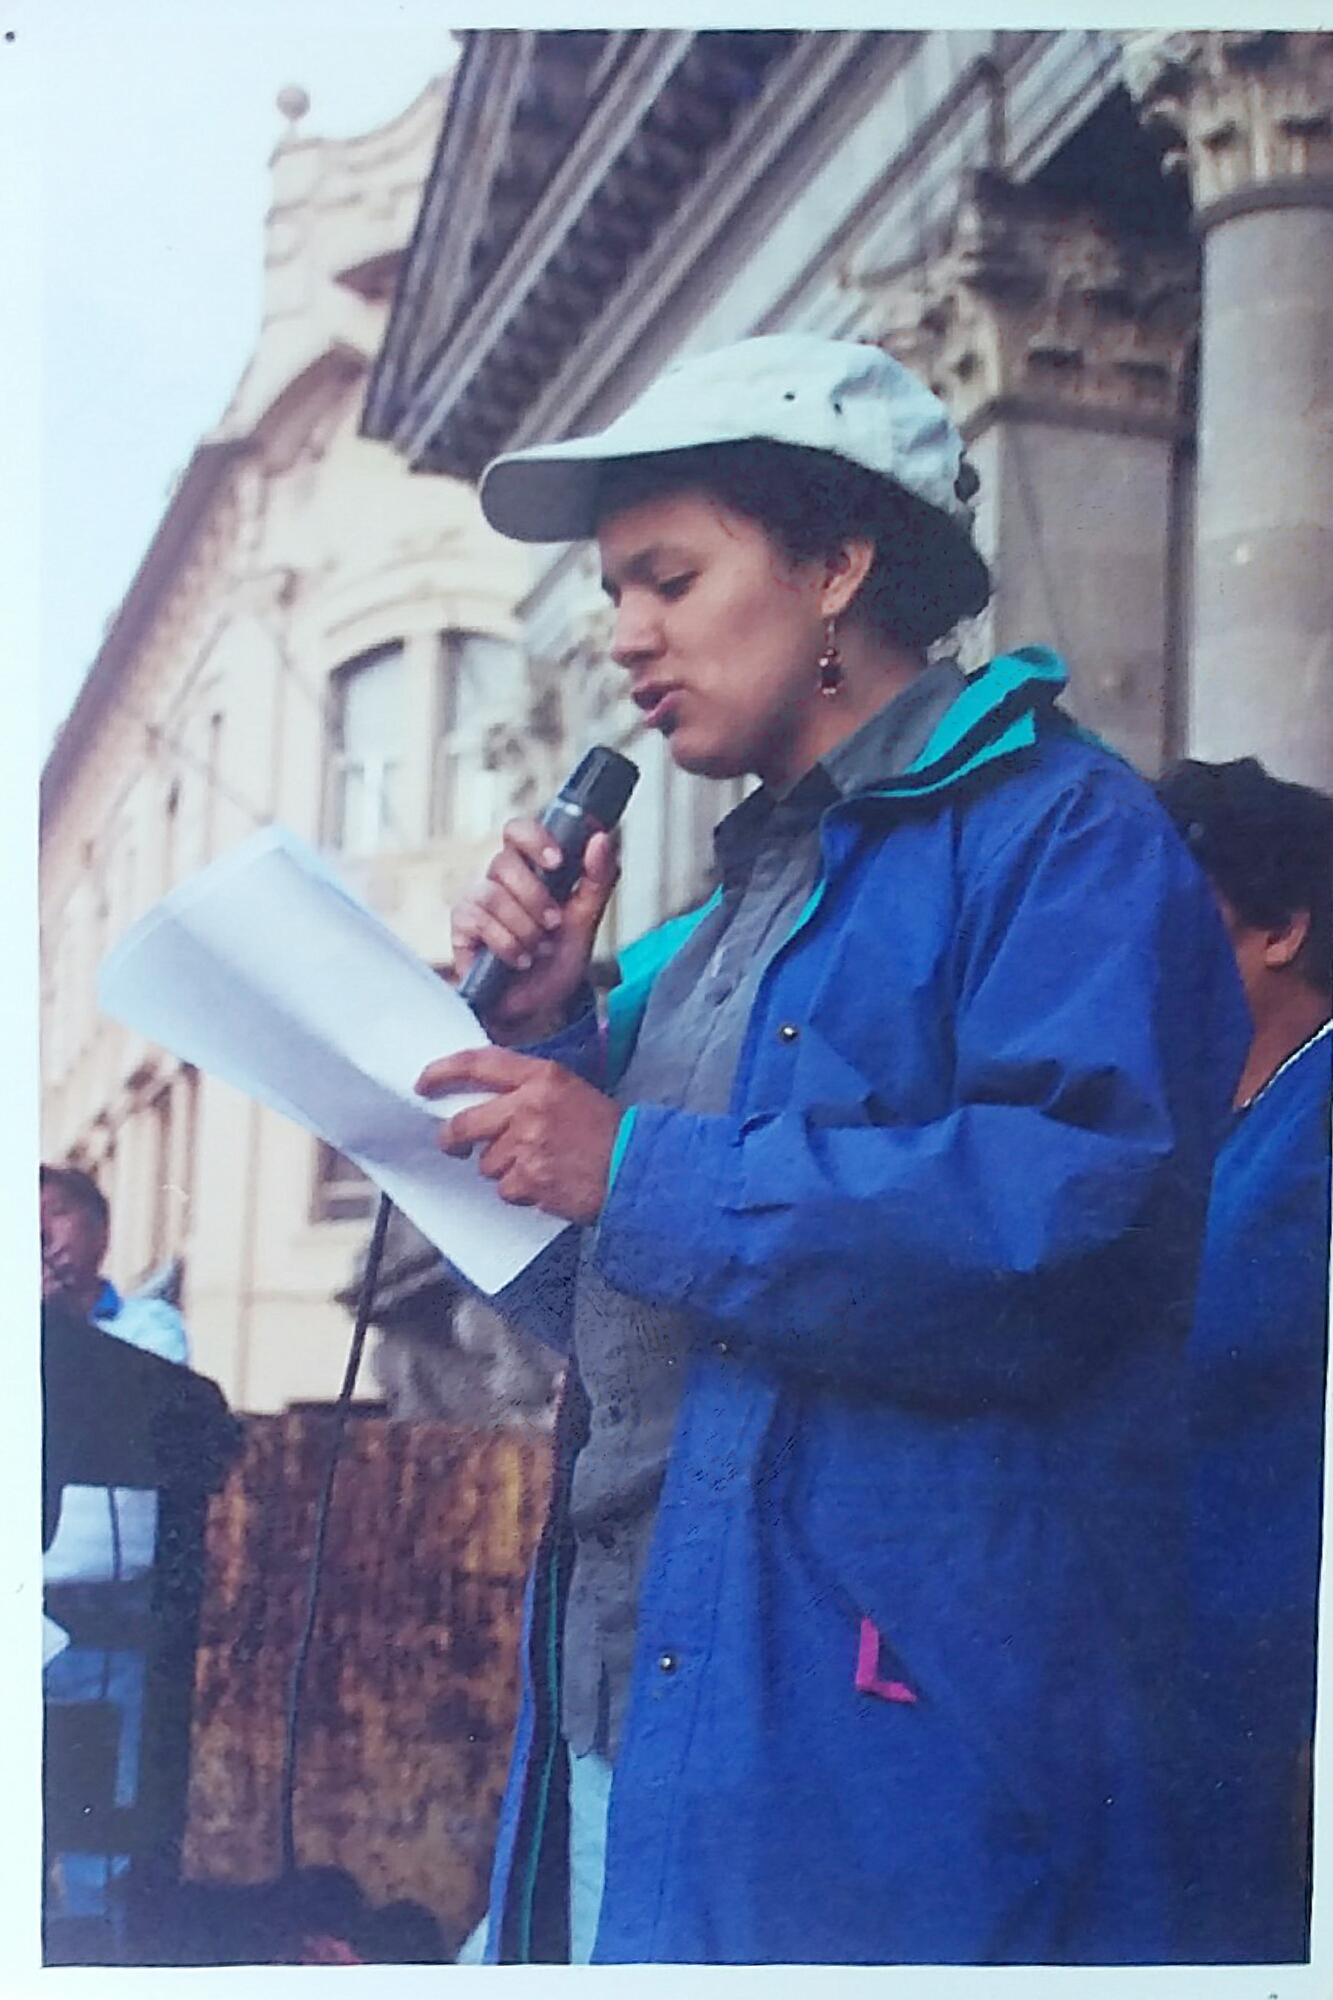 Berta speaking at an event.